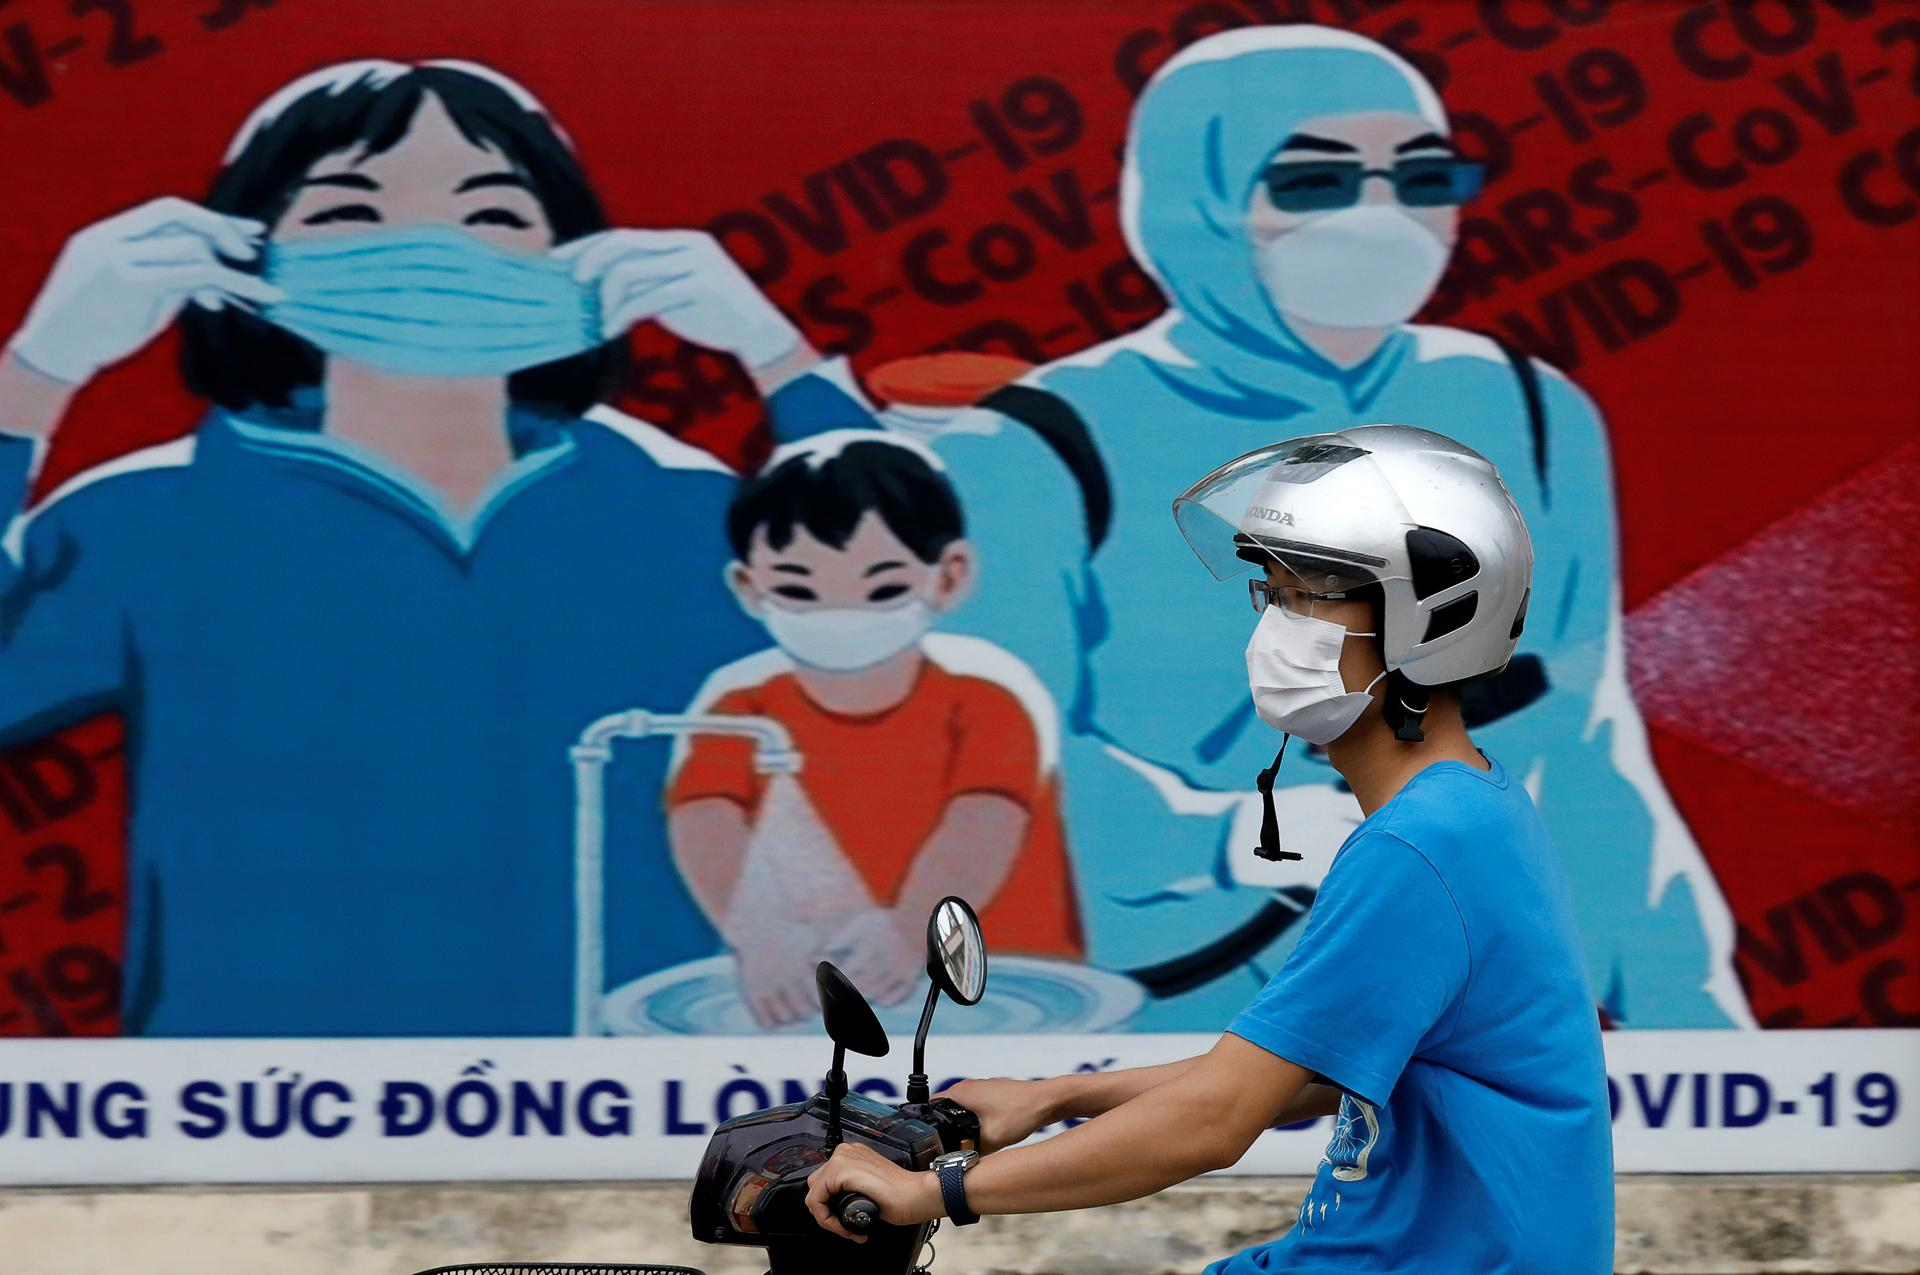 Vietnam reports 1 new local coronavirus case, tally at 621